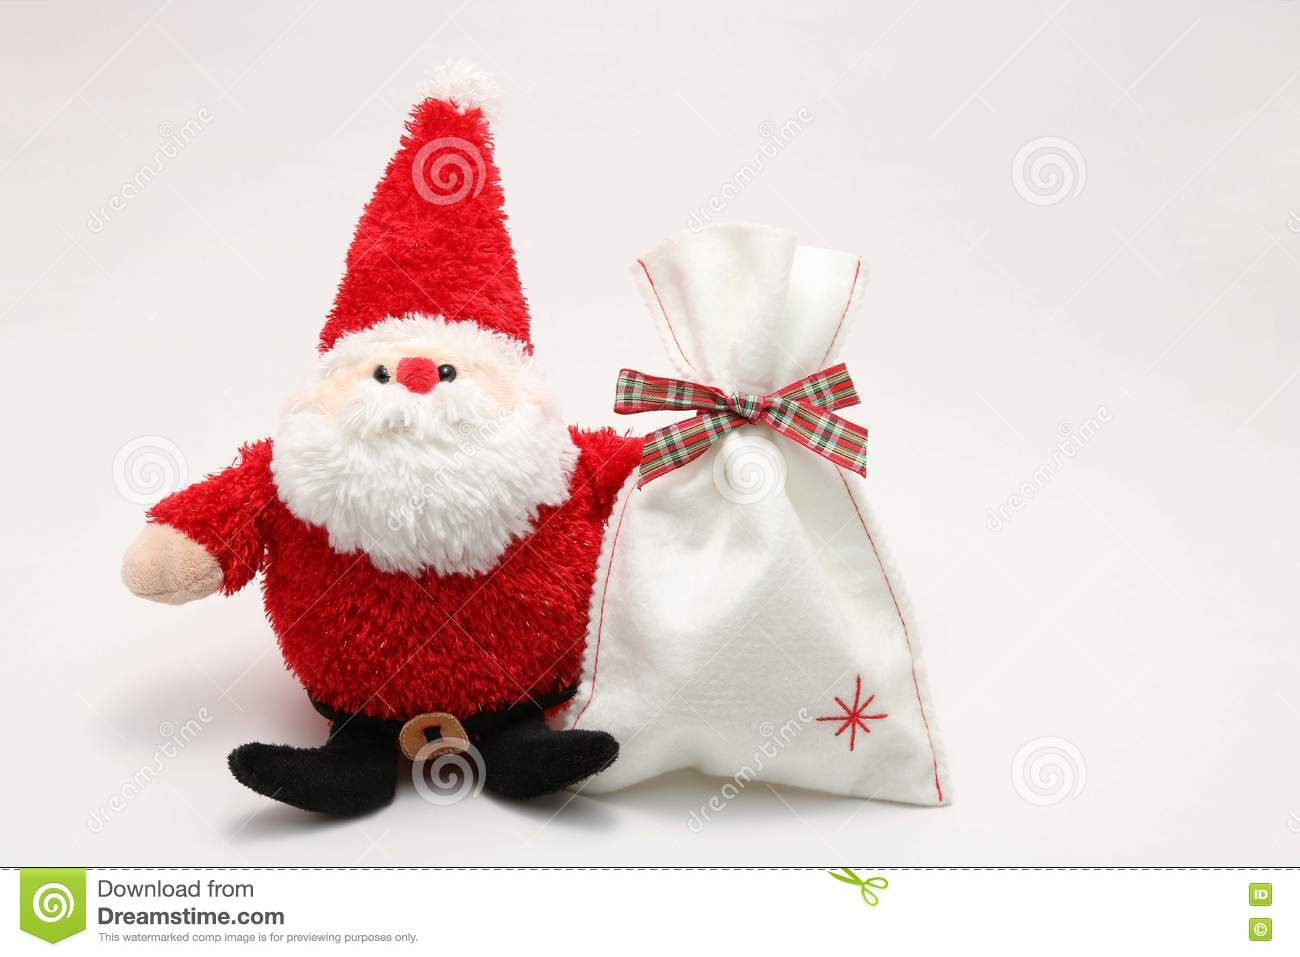 Cute Stuffed Toy Santa Claus And Present On White Background Stock